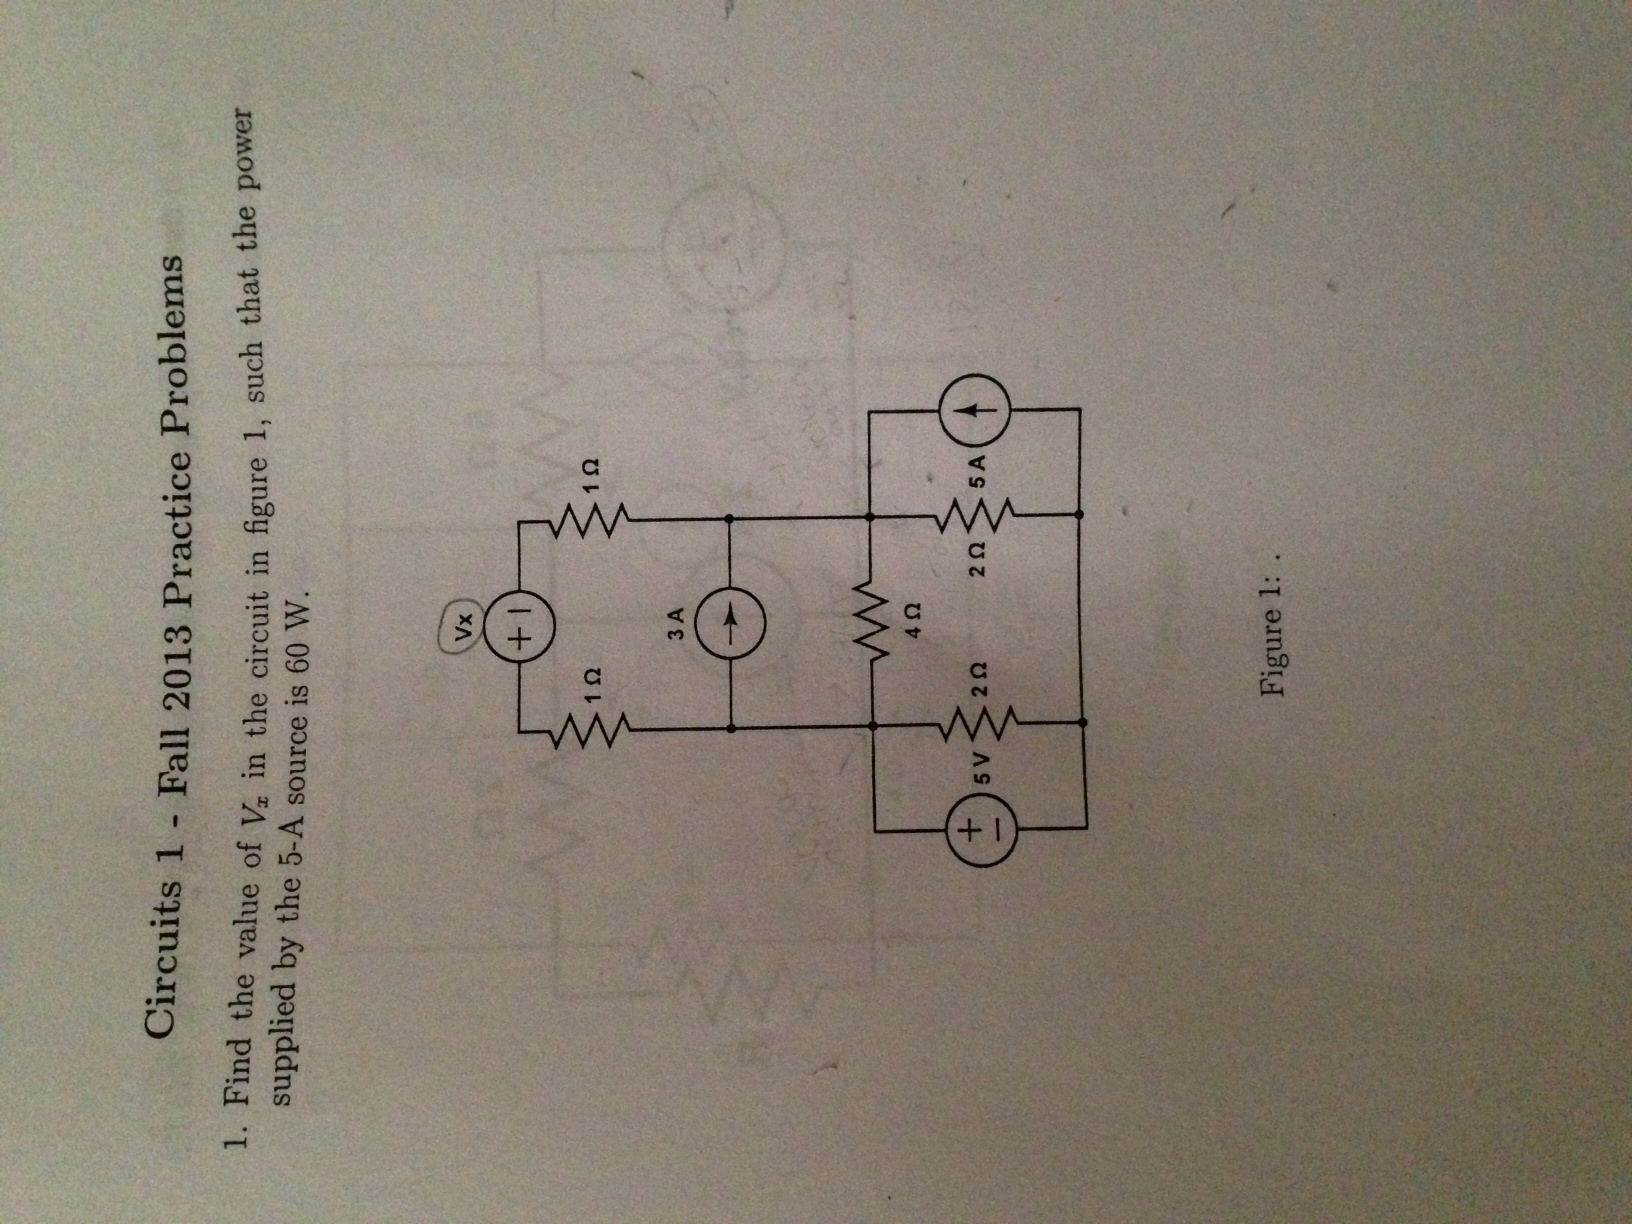 Find the value of Vx in the circuit in figure 1, s